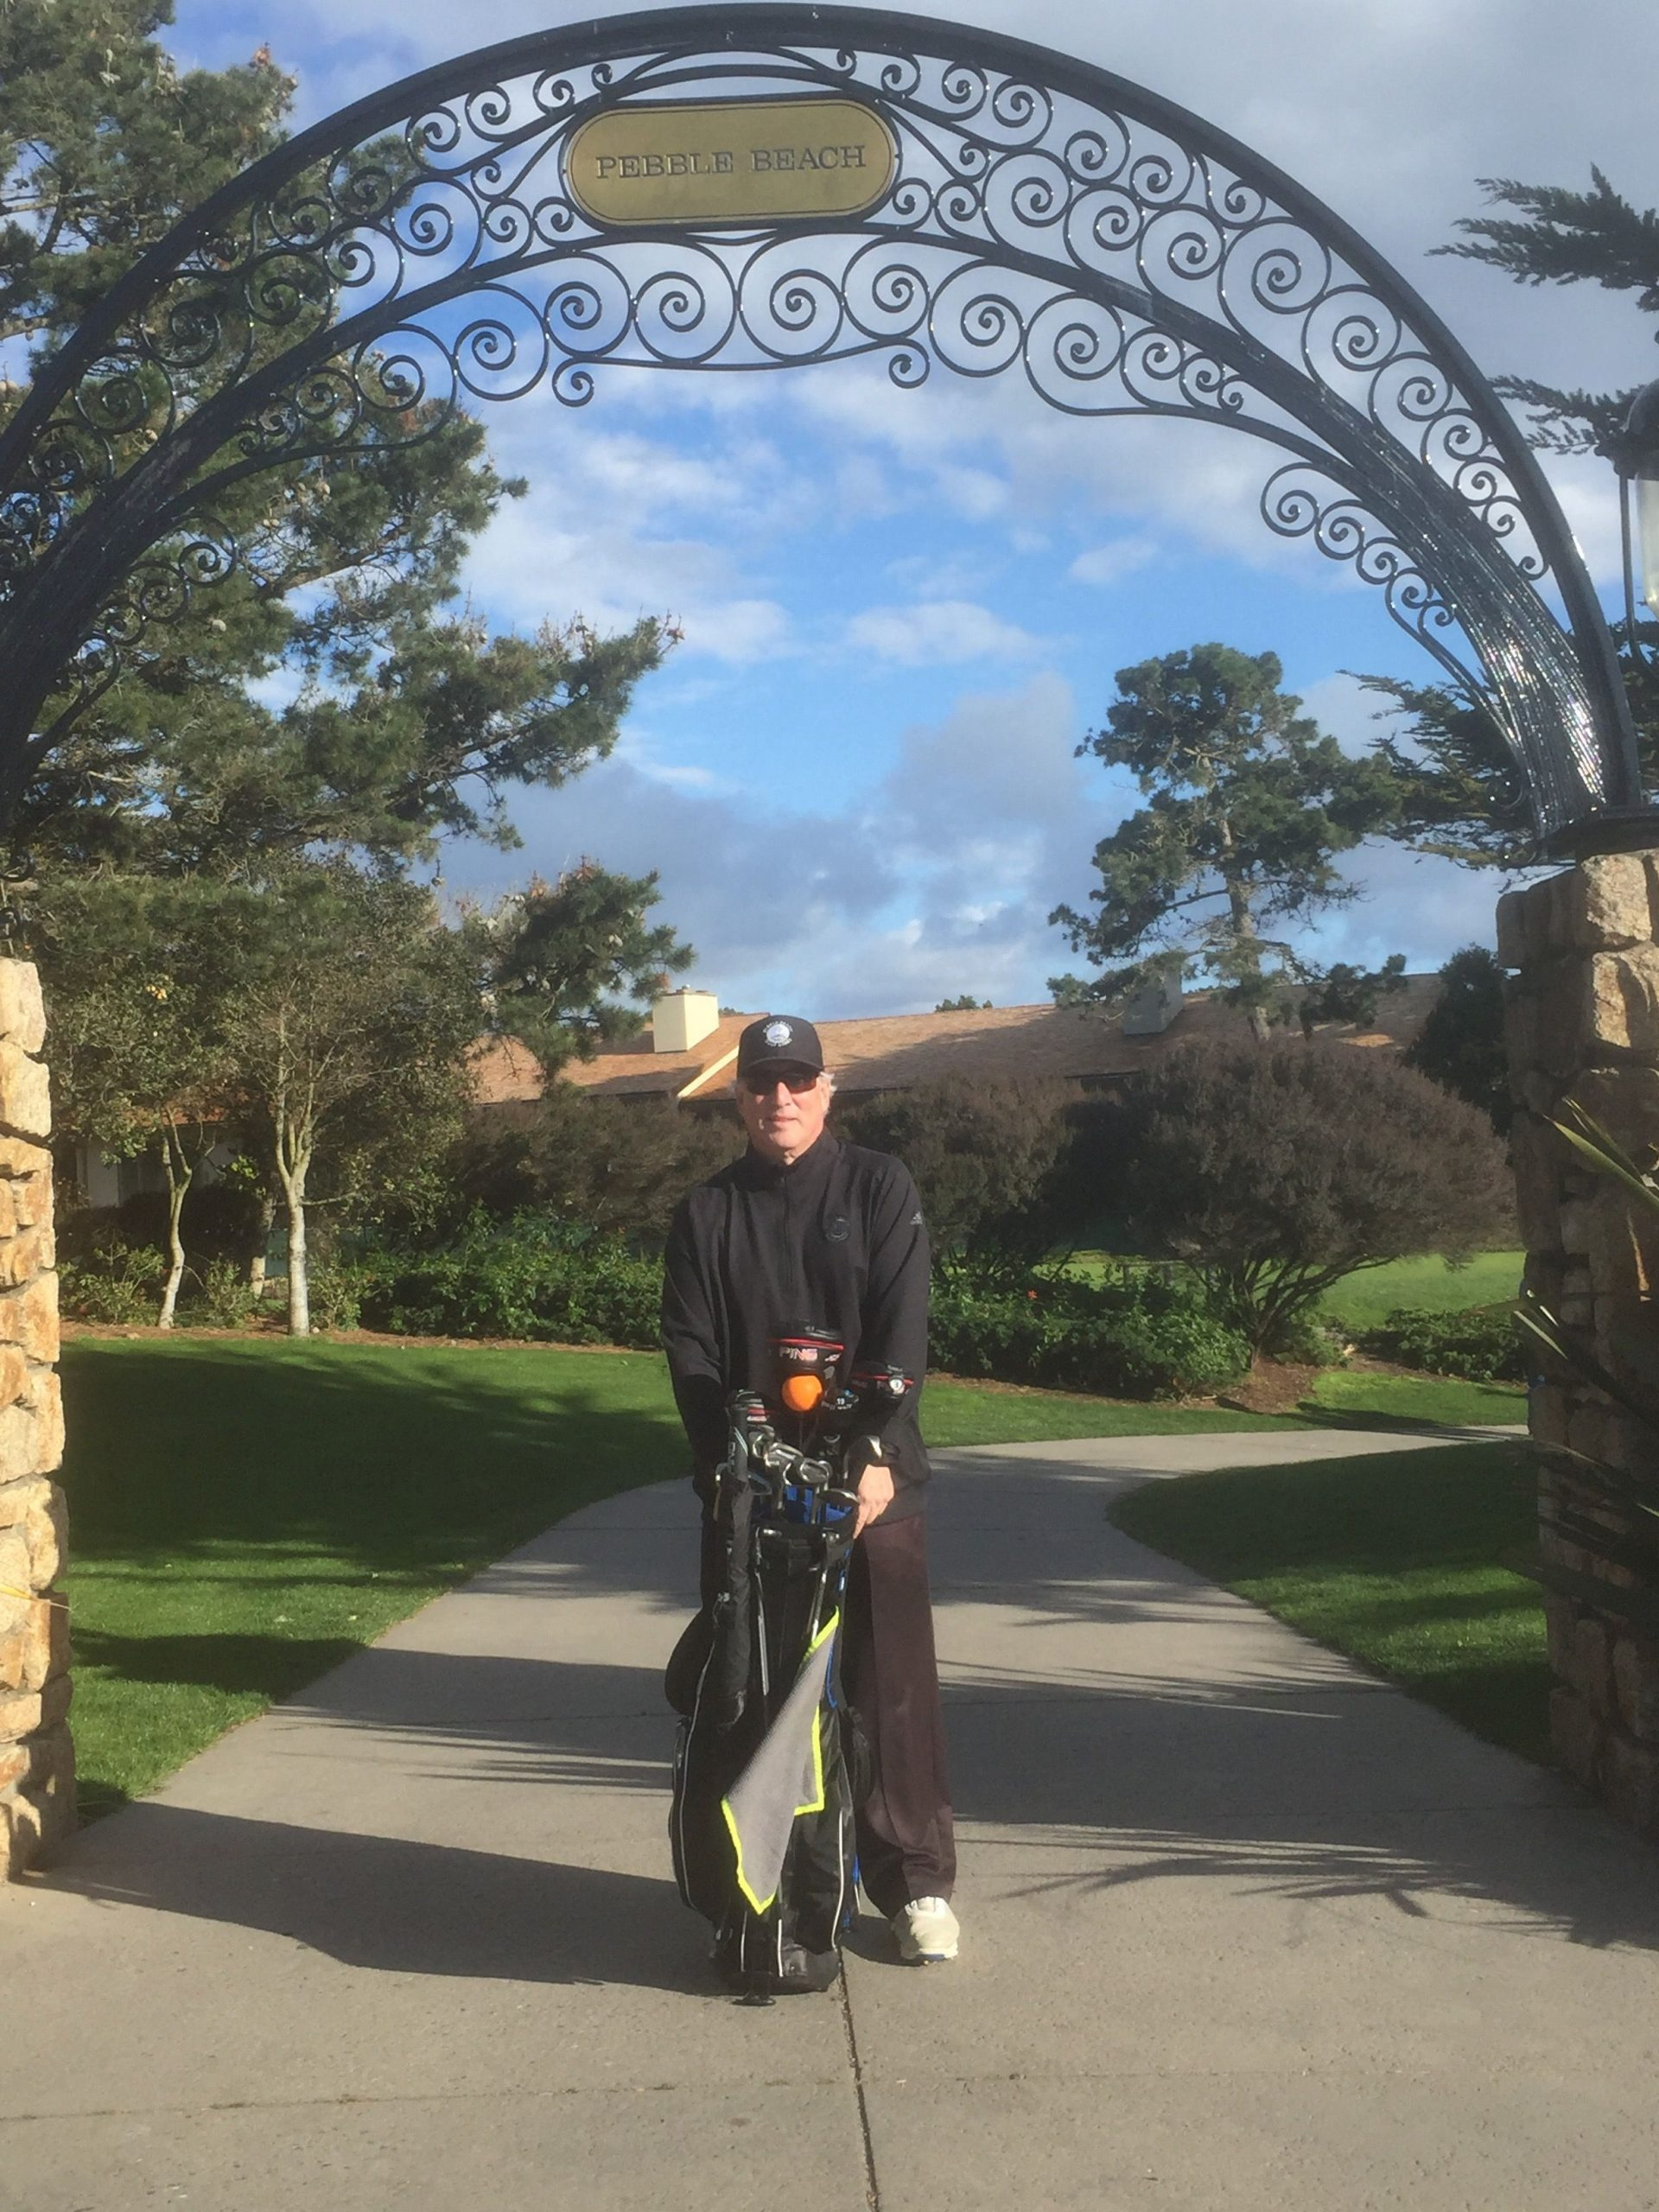 Ed at Pebble Beach